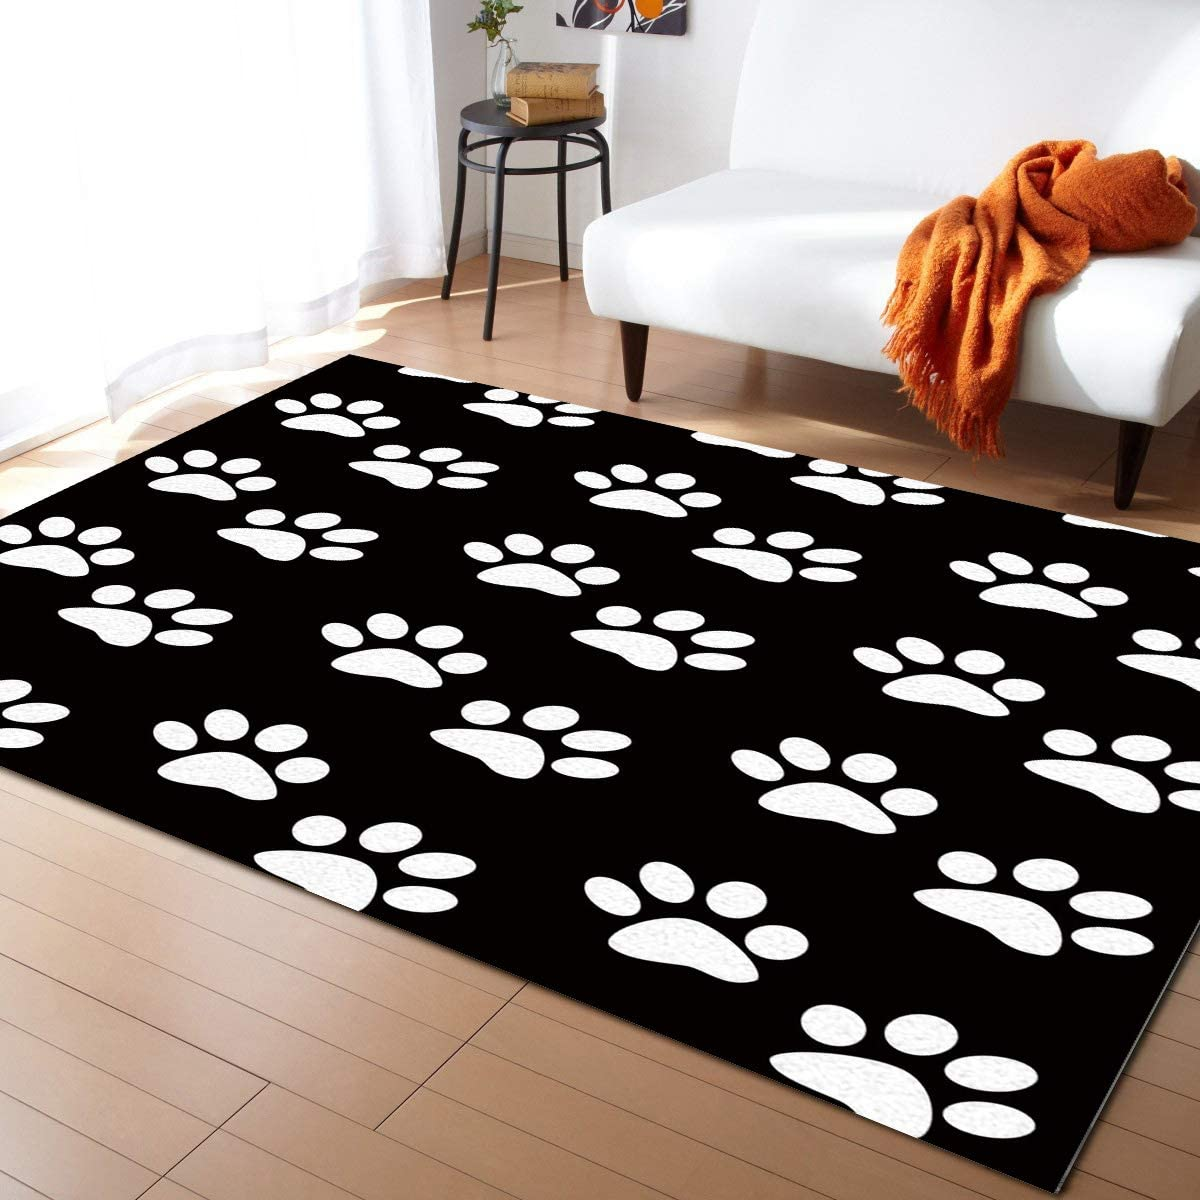 Modern Contemporary Area Rug for Living Dog Bla Paw Ranking TOP20 Product Prints Room